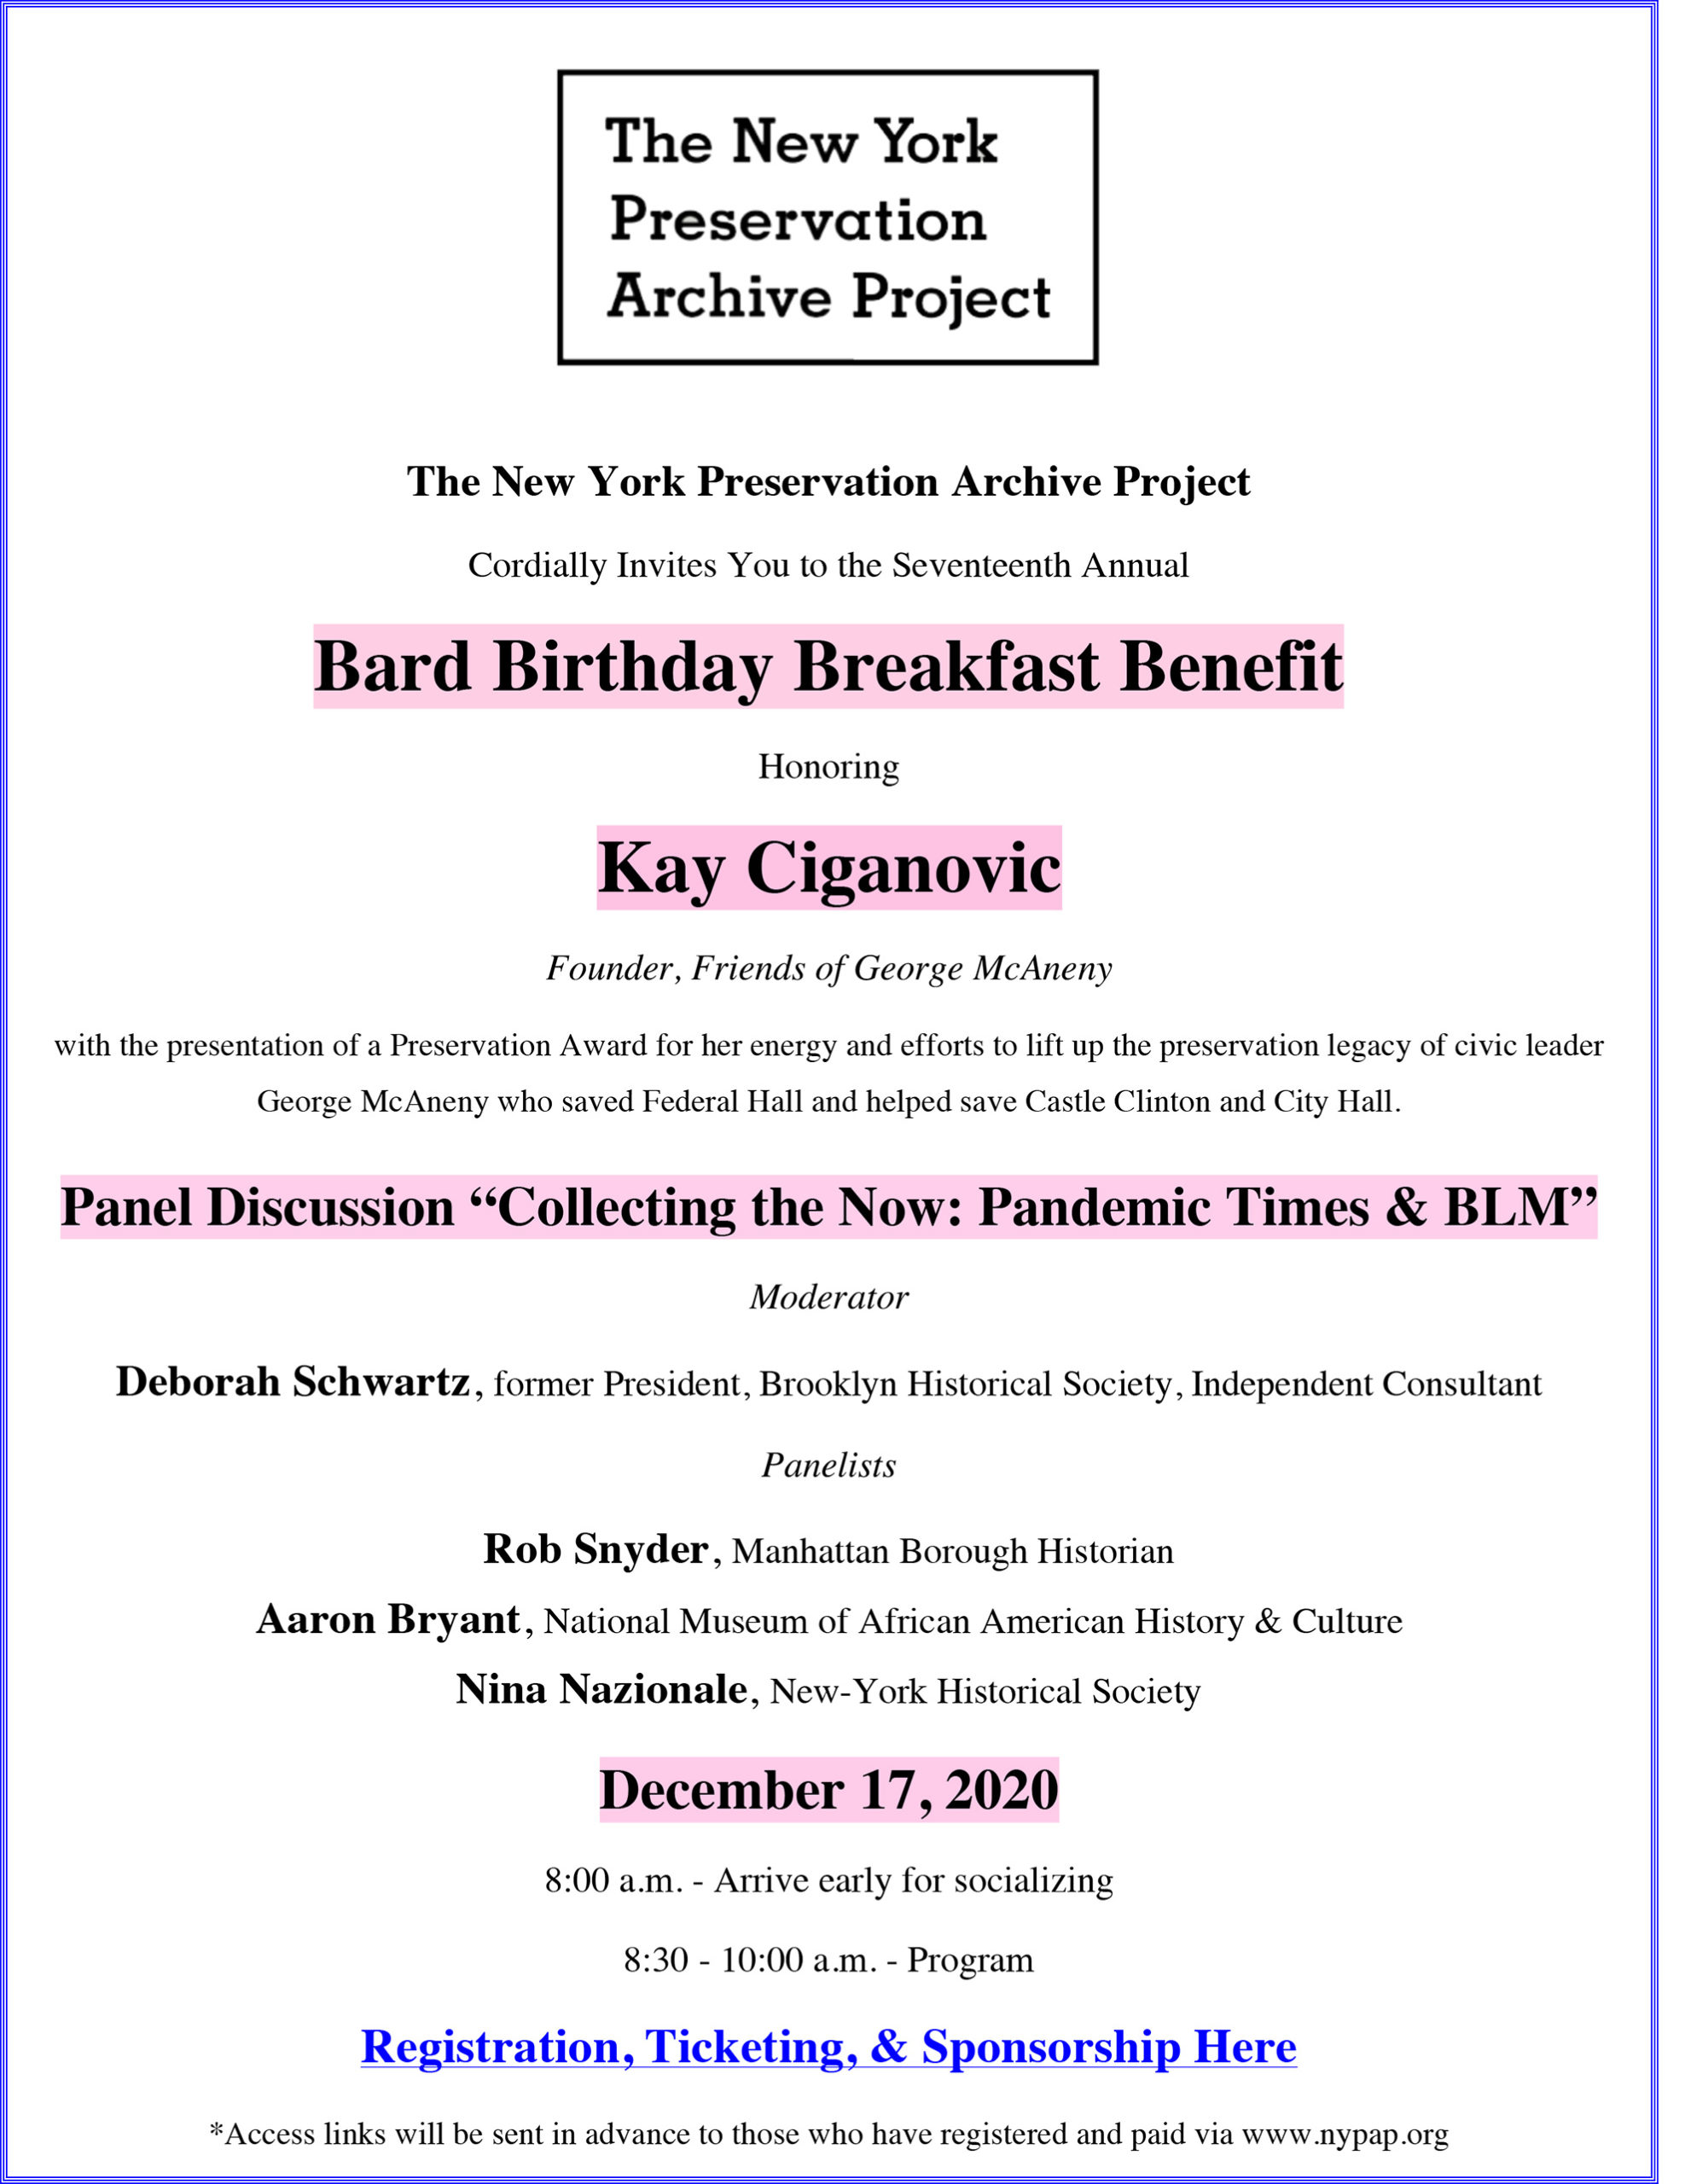 The New York Preservation Archive Project Bard Birthday Breakfast Benefit